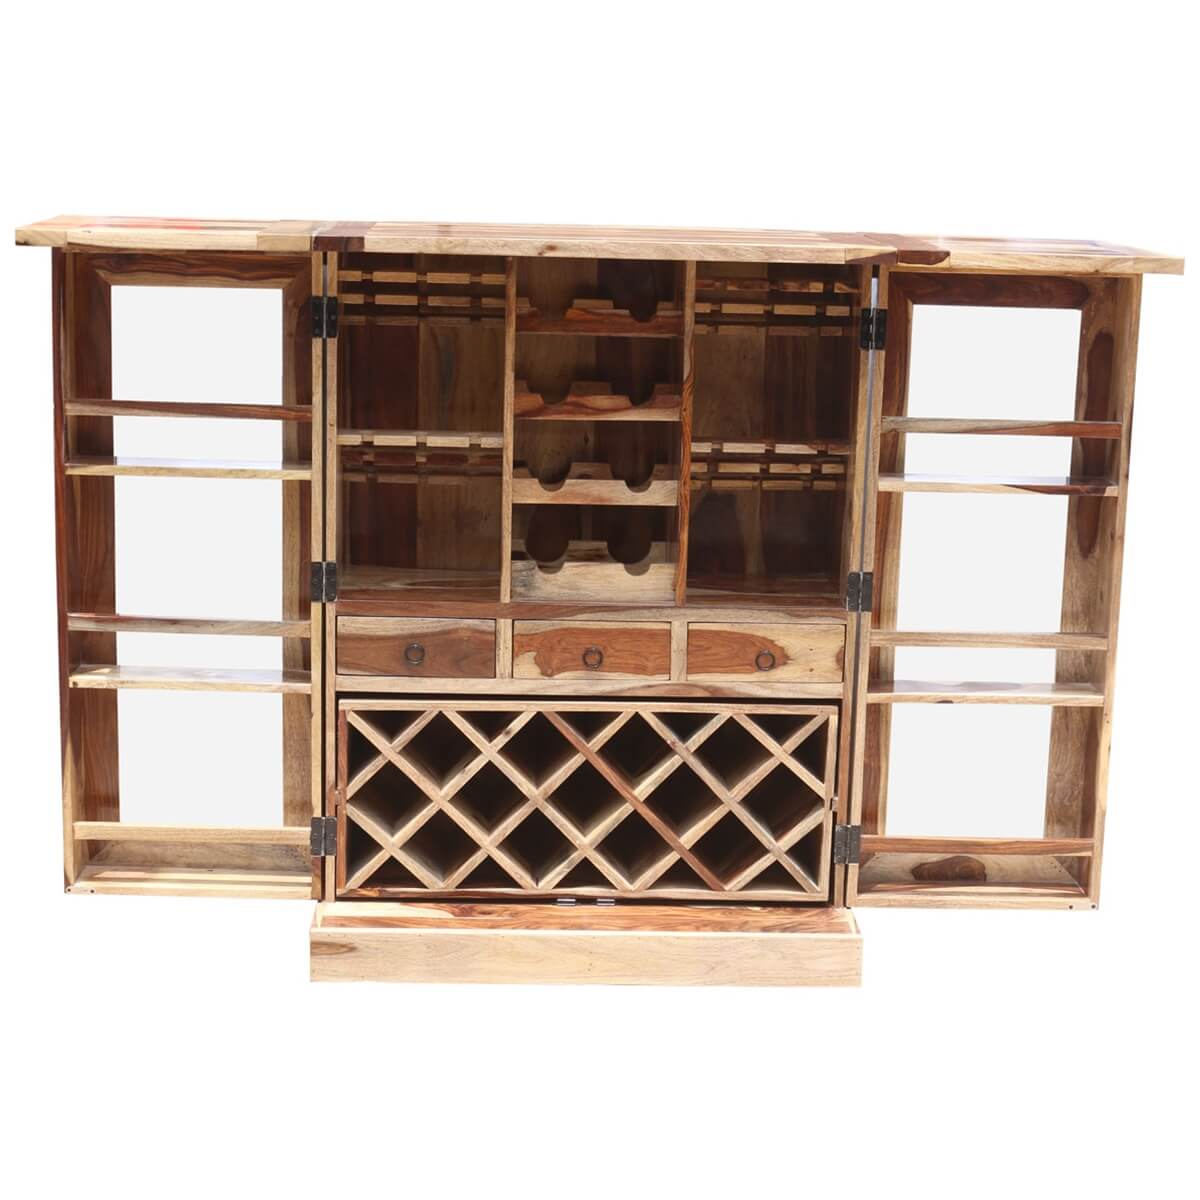 Study Solid Wood Foldout Complete Wine Bar Liquor Cabinet